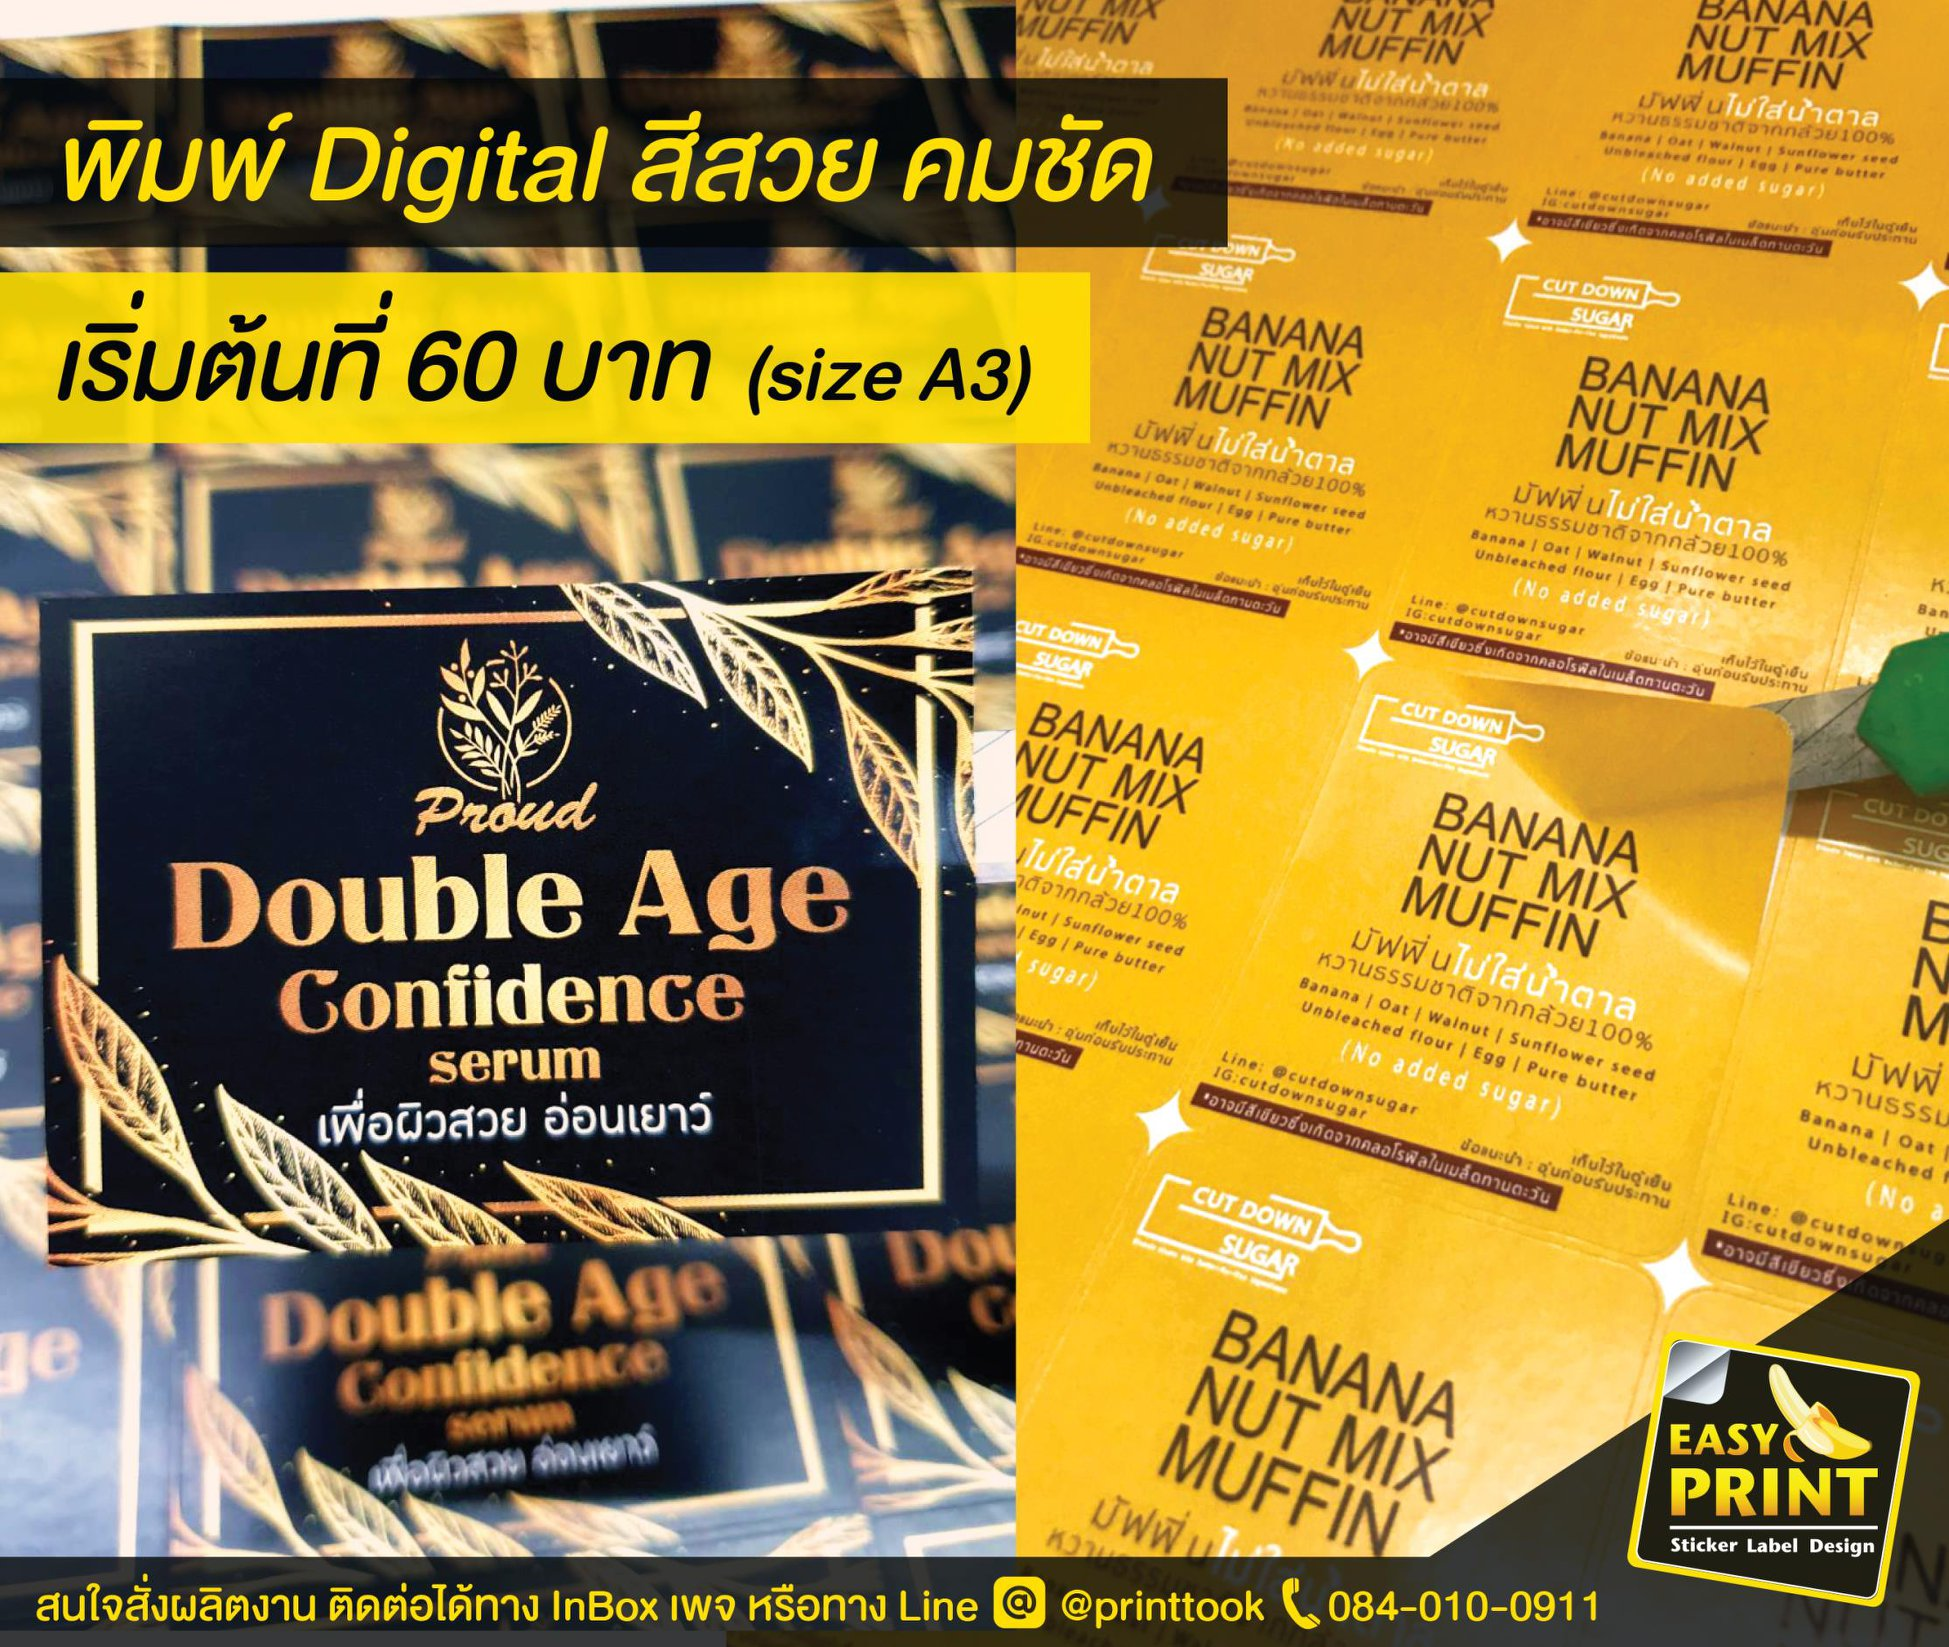 พิมพ์ Digital ให้ Double Age Confidence Serum